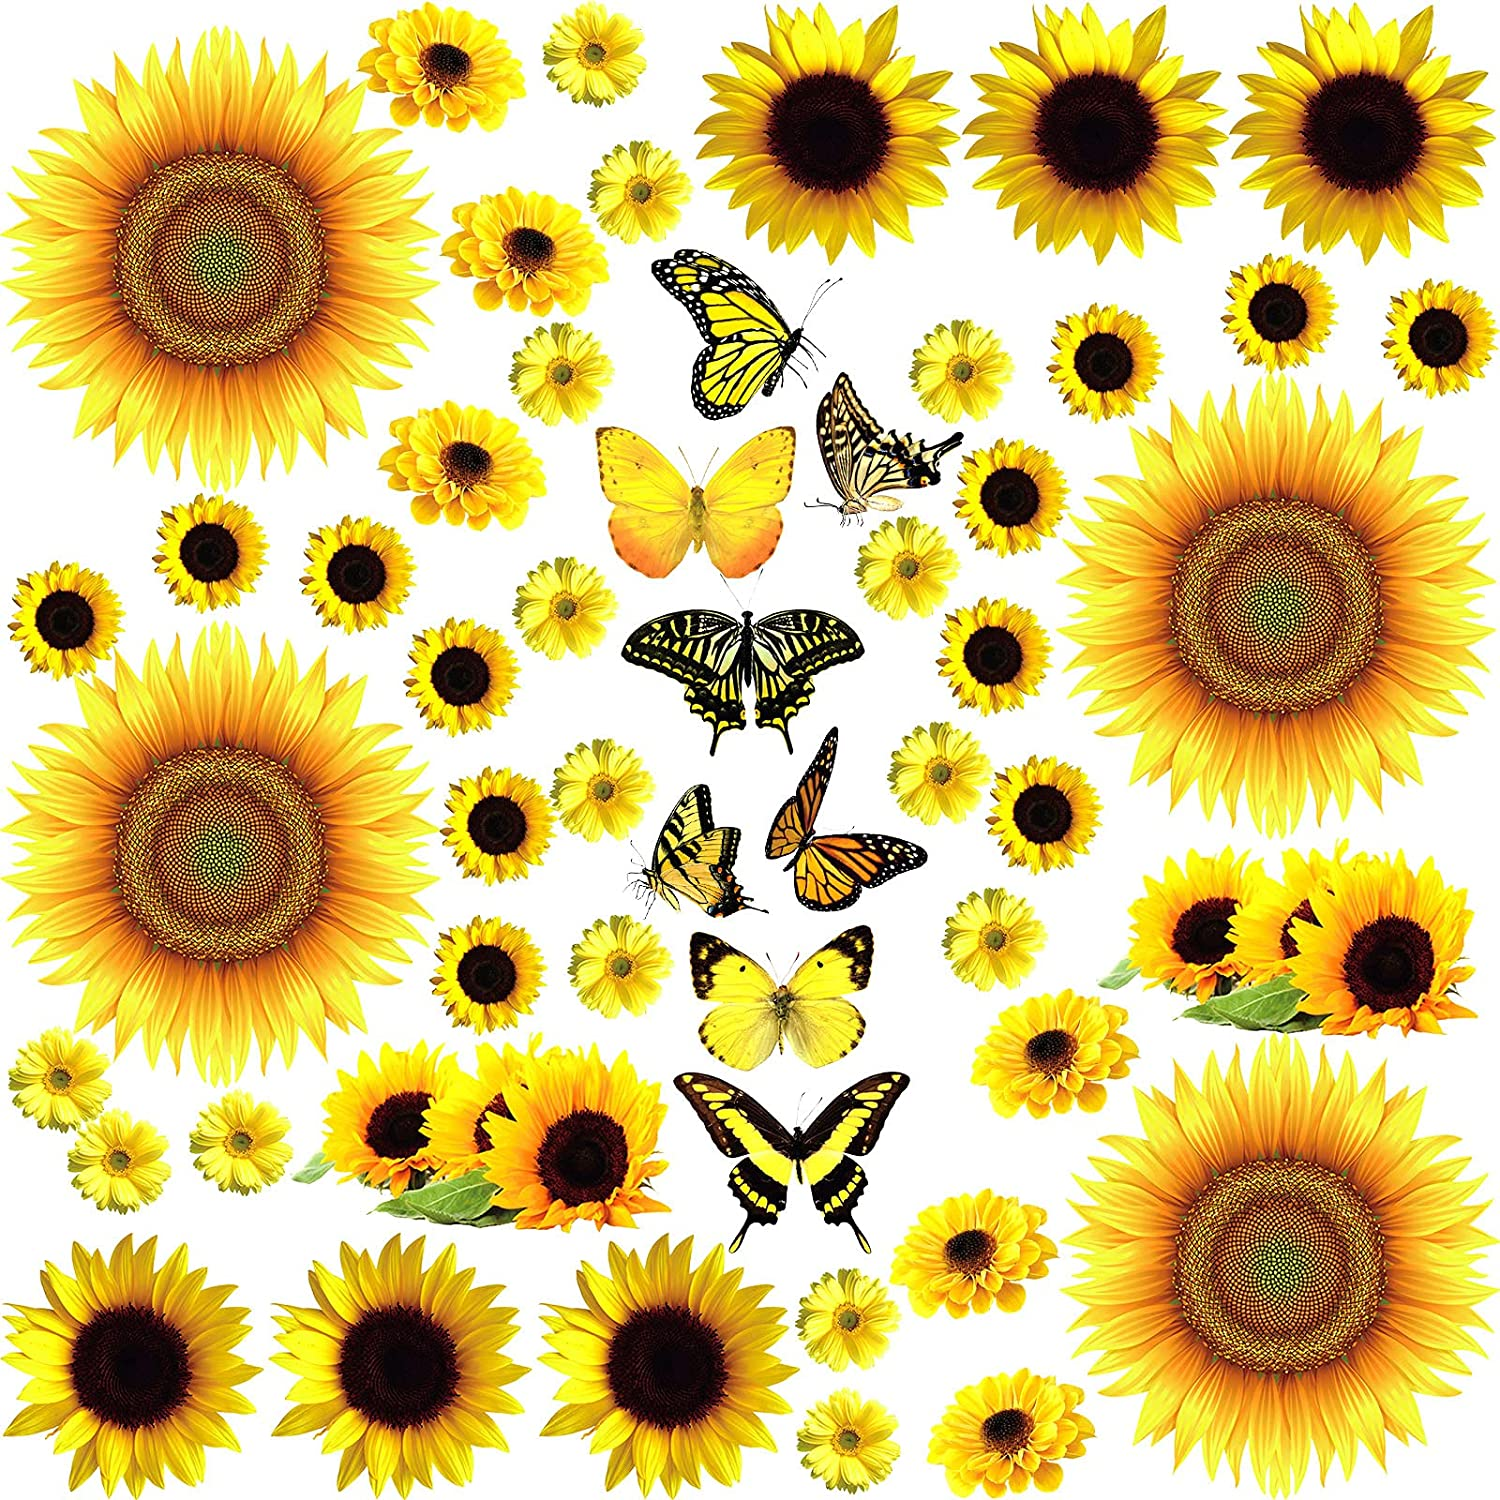 53 Pieces Sunflower Wall Decals with Butterfly Wall Stickers, Waterproof DIY Yellow Flower Mural Stickers Easy to Peel Sunflower Wall Stickers for Nursery Bedroom Living Room Bathroom Kitchen Decals